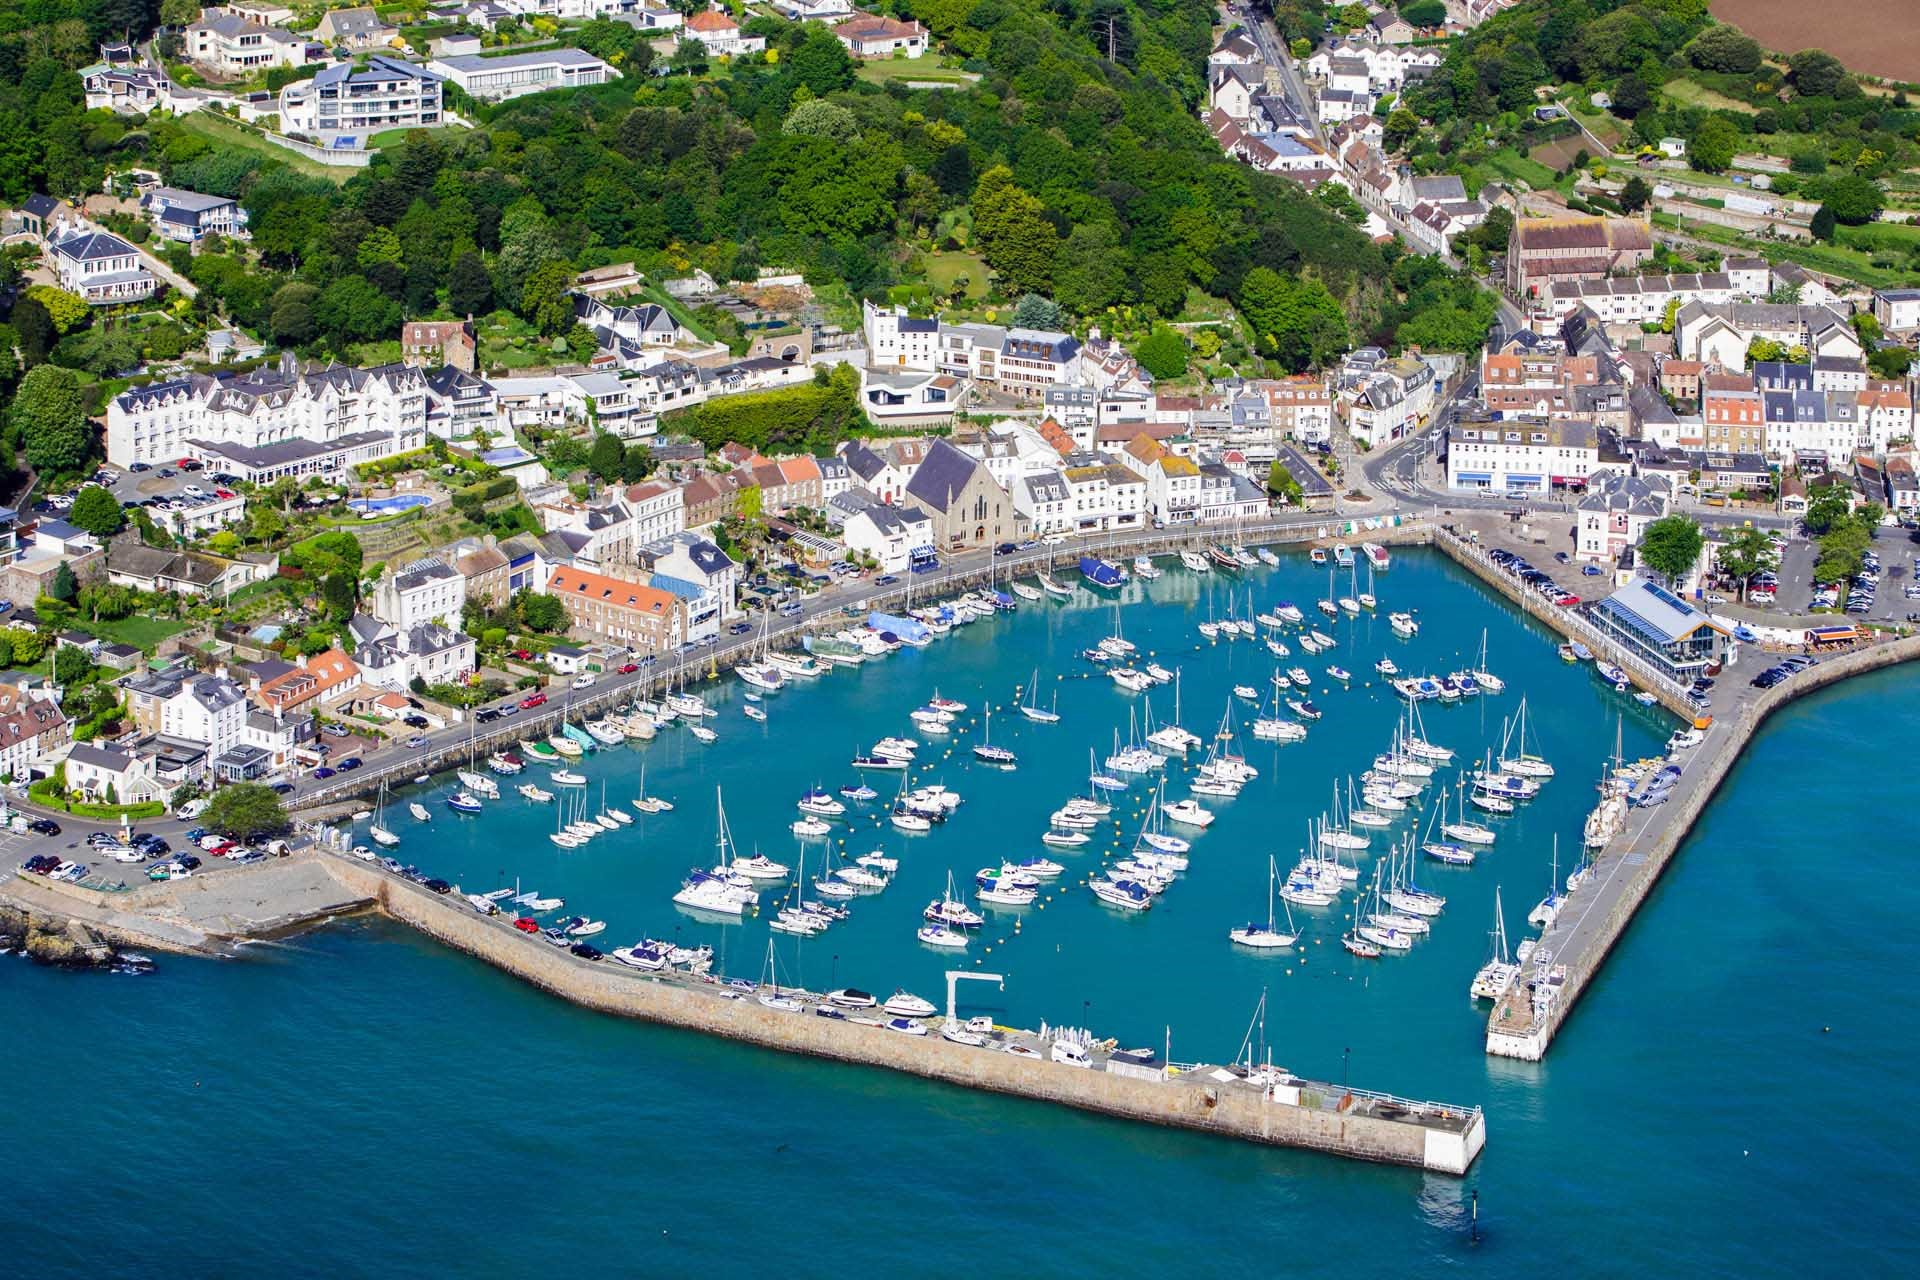 Aerial View of St Aubin's Harbour